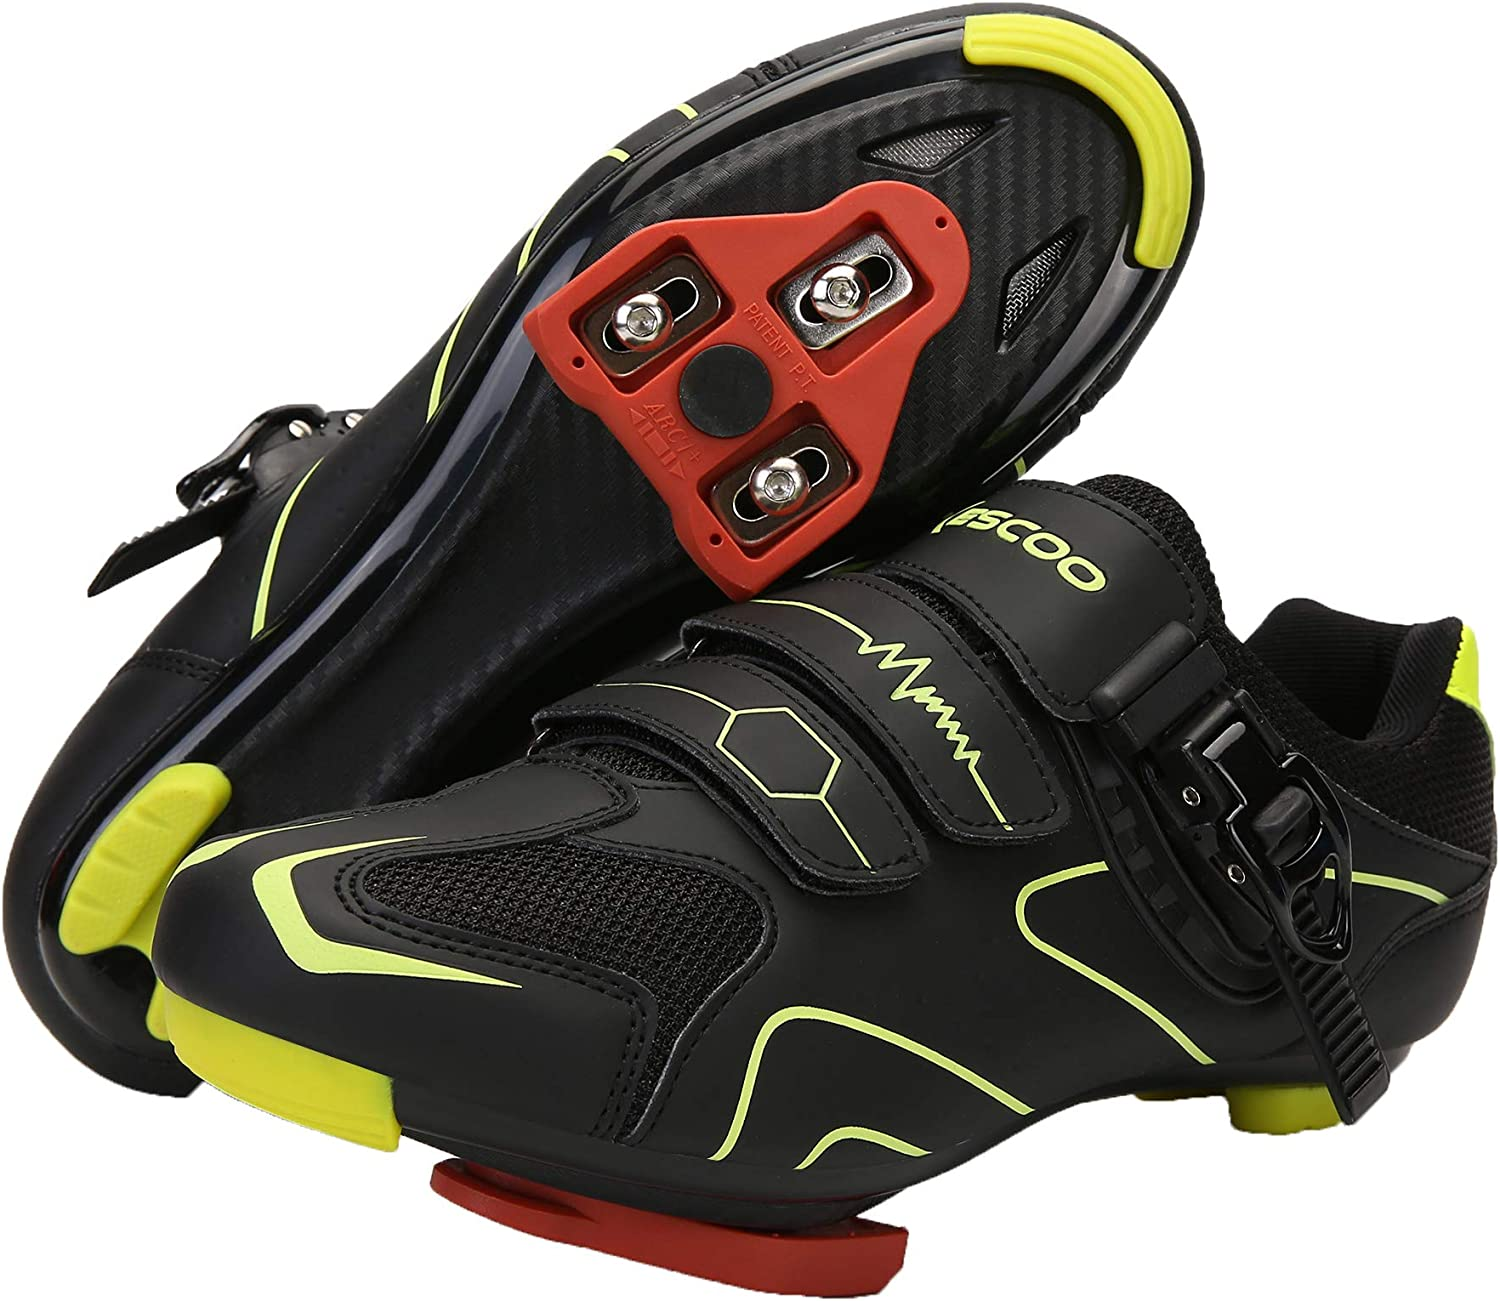 Unisex Cycling Shoes Compatible with Indoor Road Peloton Sh Ranking Max 86% OFF TOP16 Bike